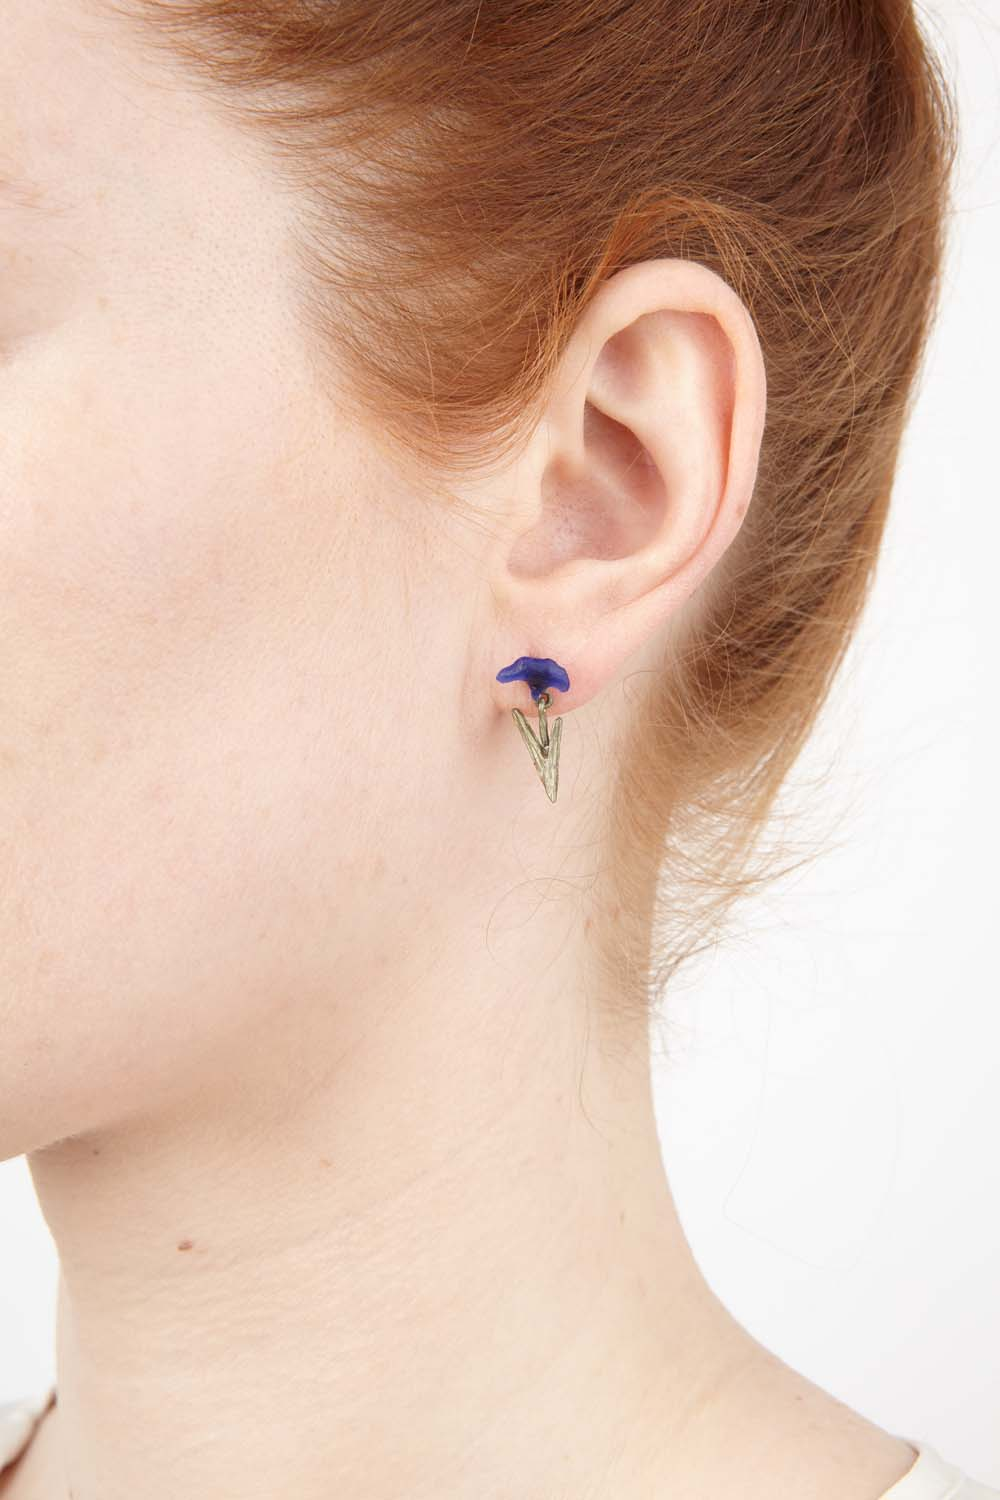 Van Gogh Irises Earrings - Post